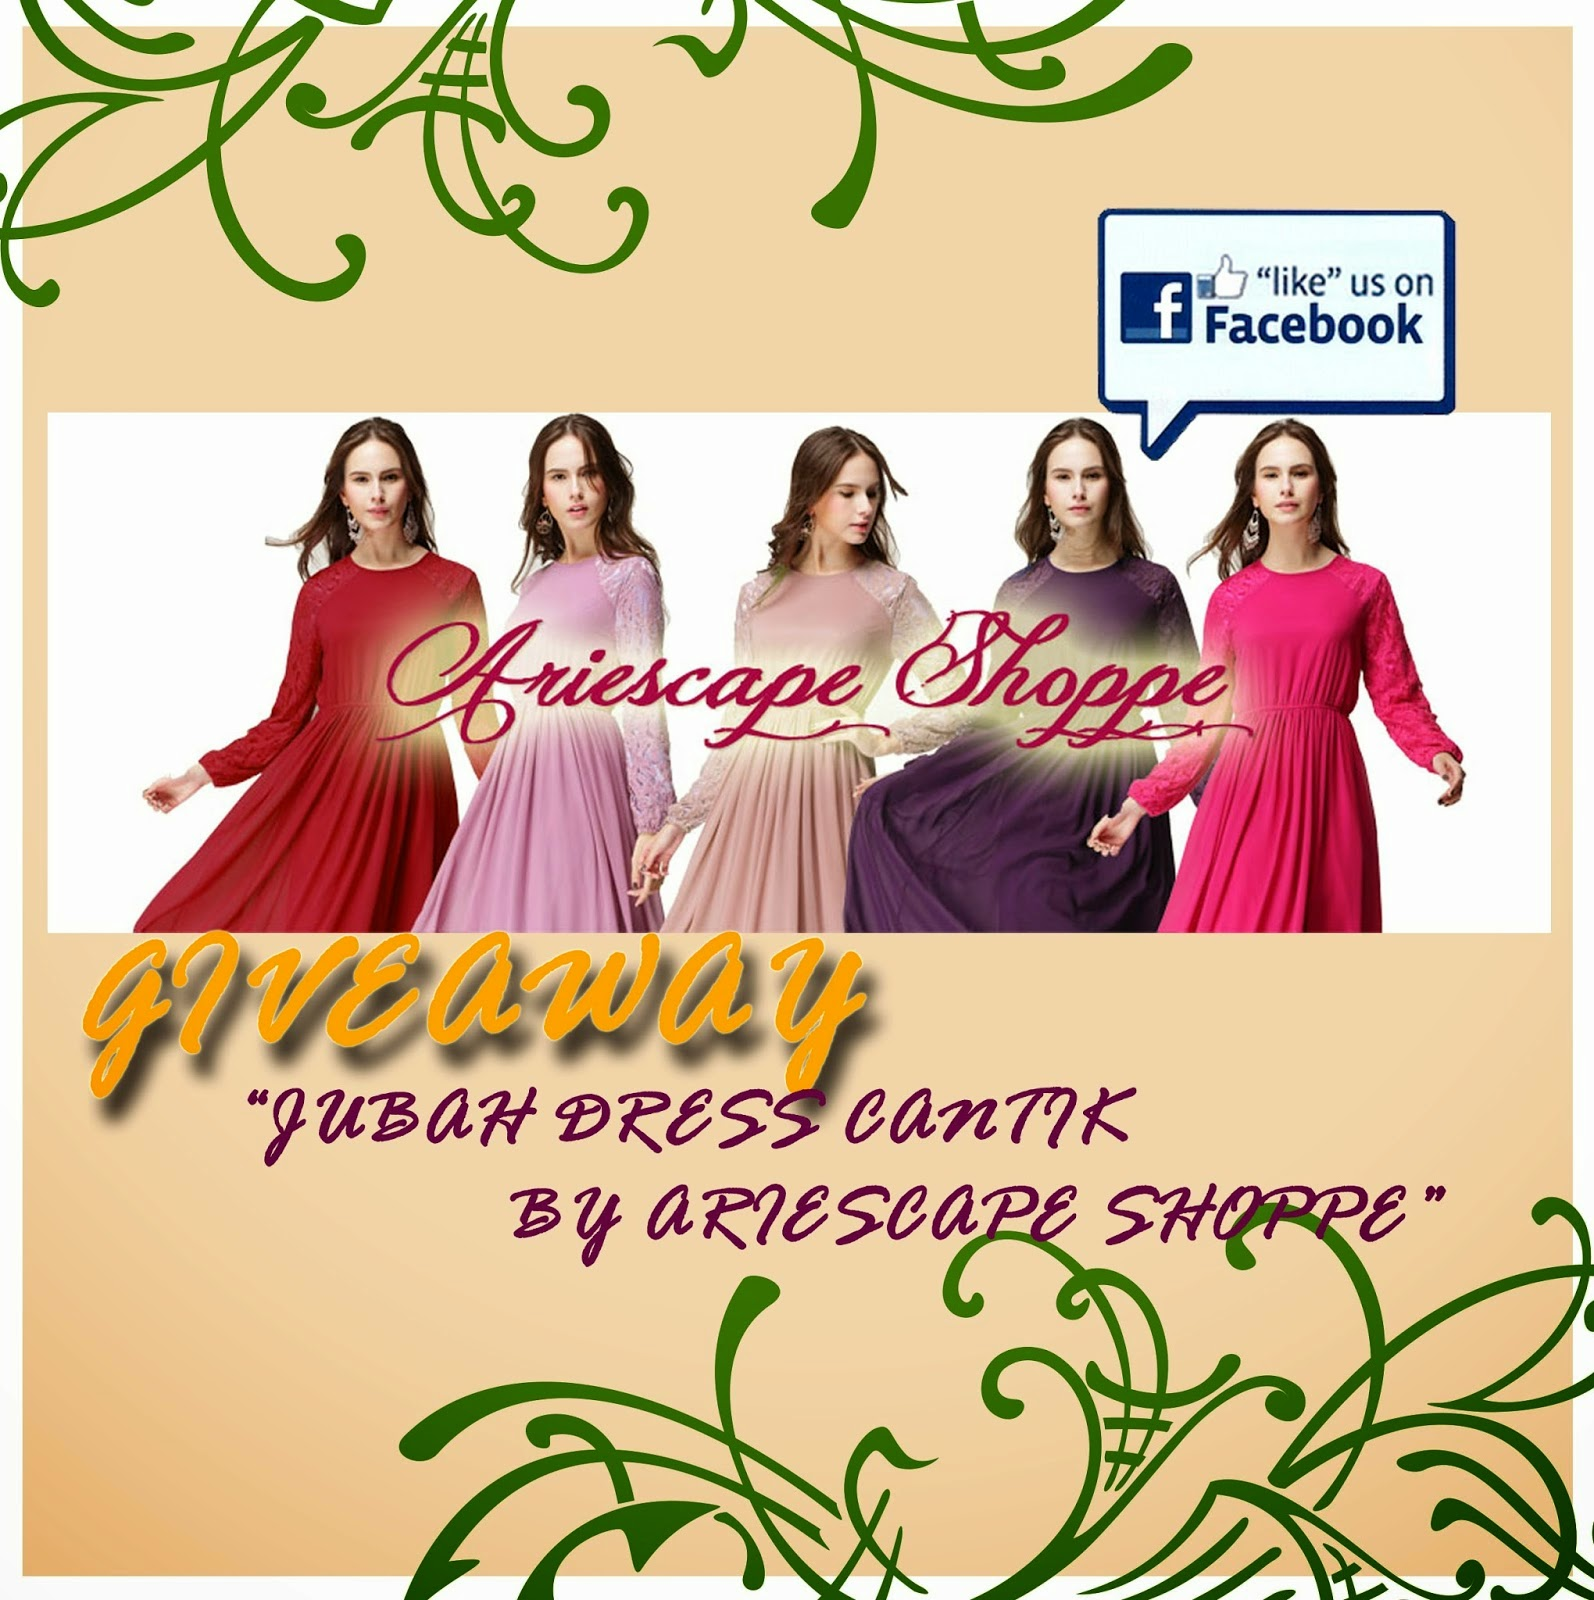 http://ariescape.blogspot.com/2014/08/giveaway-jubah-dress-cantik-by.html